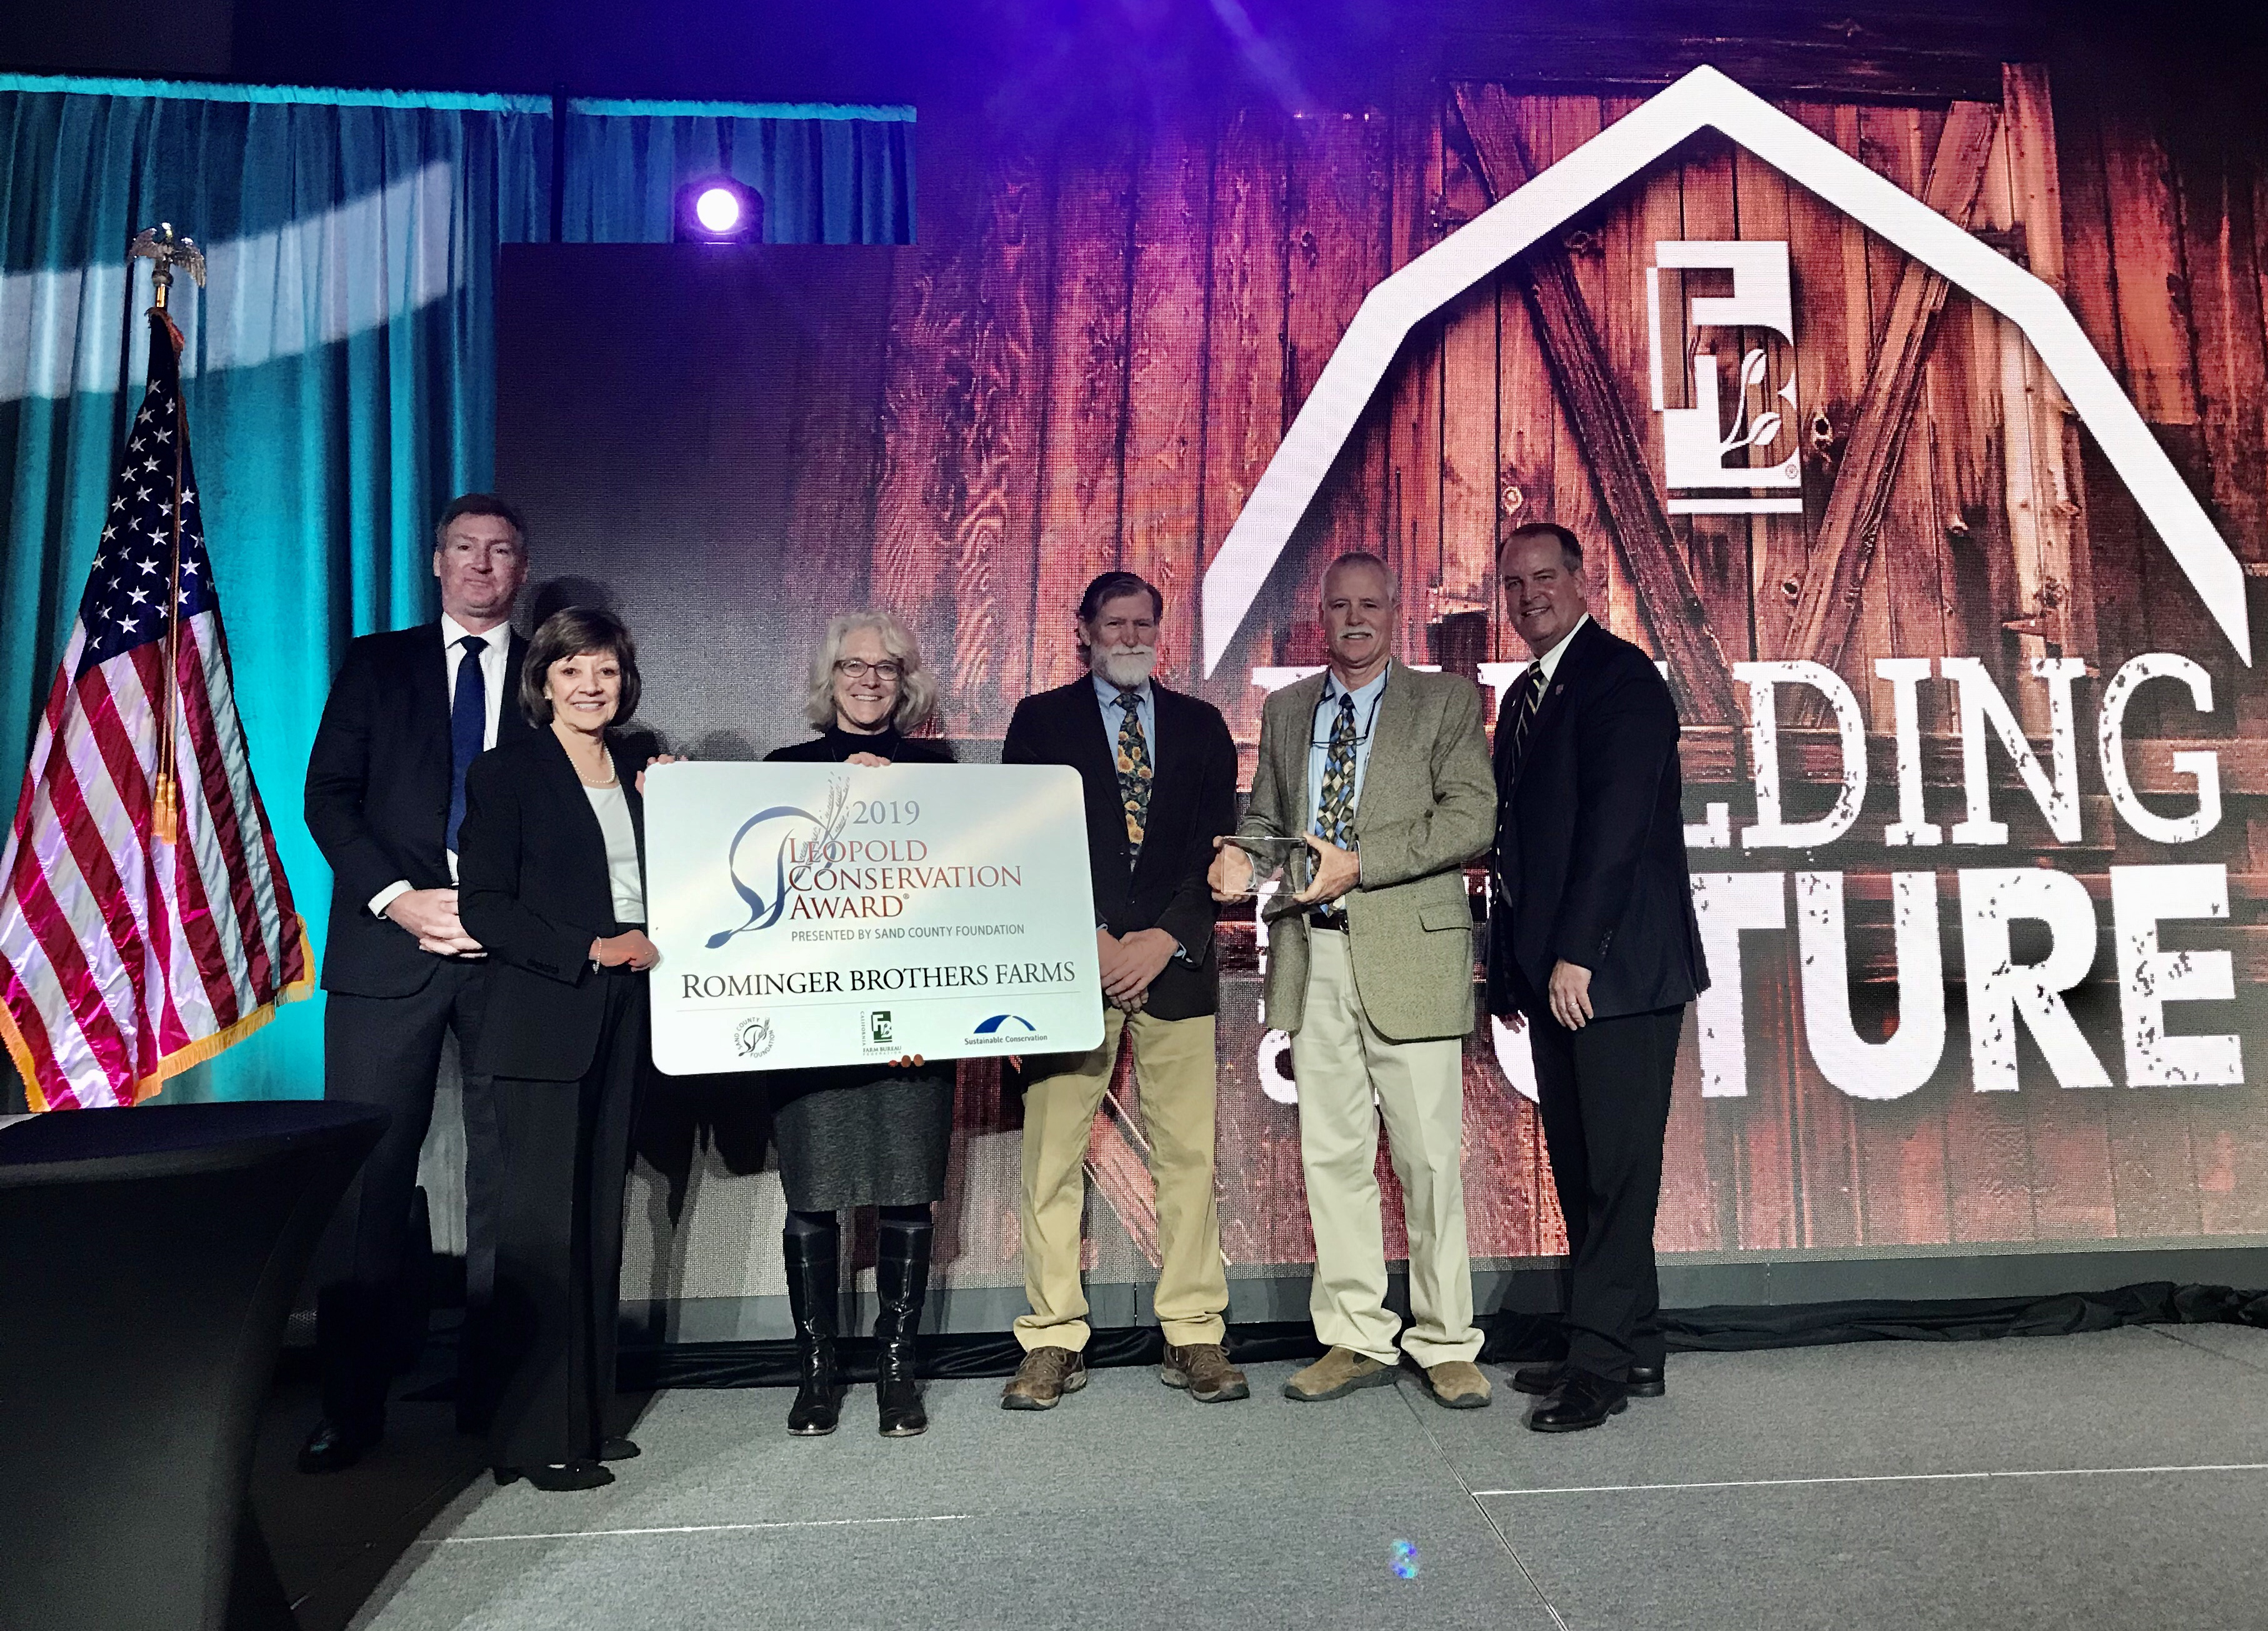 The Rominger Brothers of Yolo County were presented with the 2019 Leopold Conservation Award at the California Farm Bureau Federation's annual meeting. From left, Kevin McAleese, president/CEO of the Sand County Foundation; California Food and Agriculture Secretary Karen Ross; Ashley Boren, executive director of Sustainable Conservation; Rick and Bruce Rominger, and Farm Bureau President Jamie Johansson.